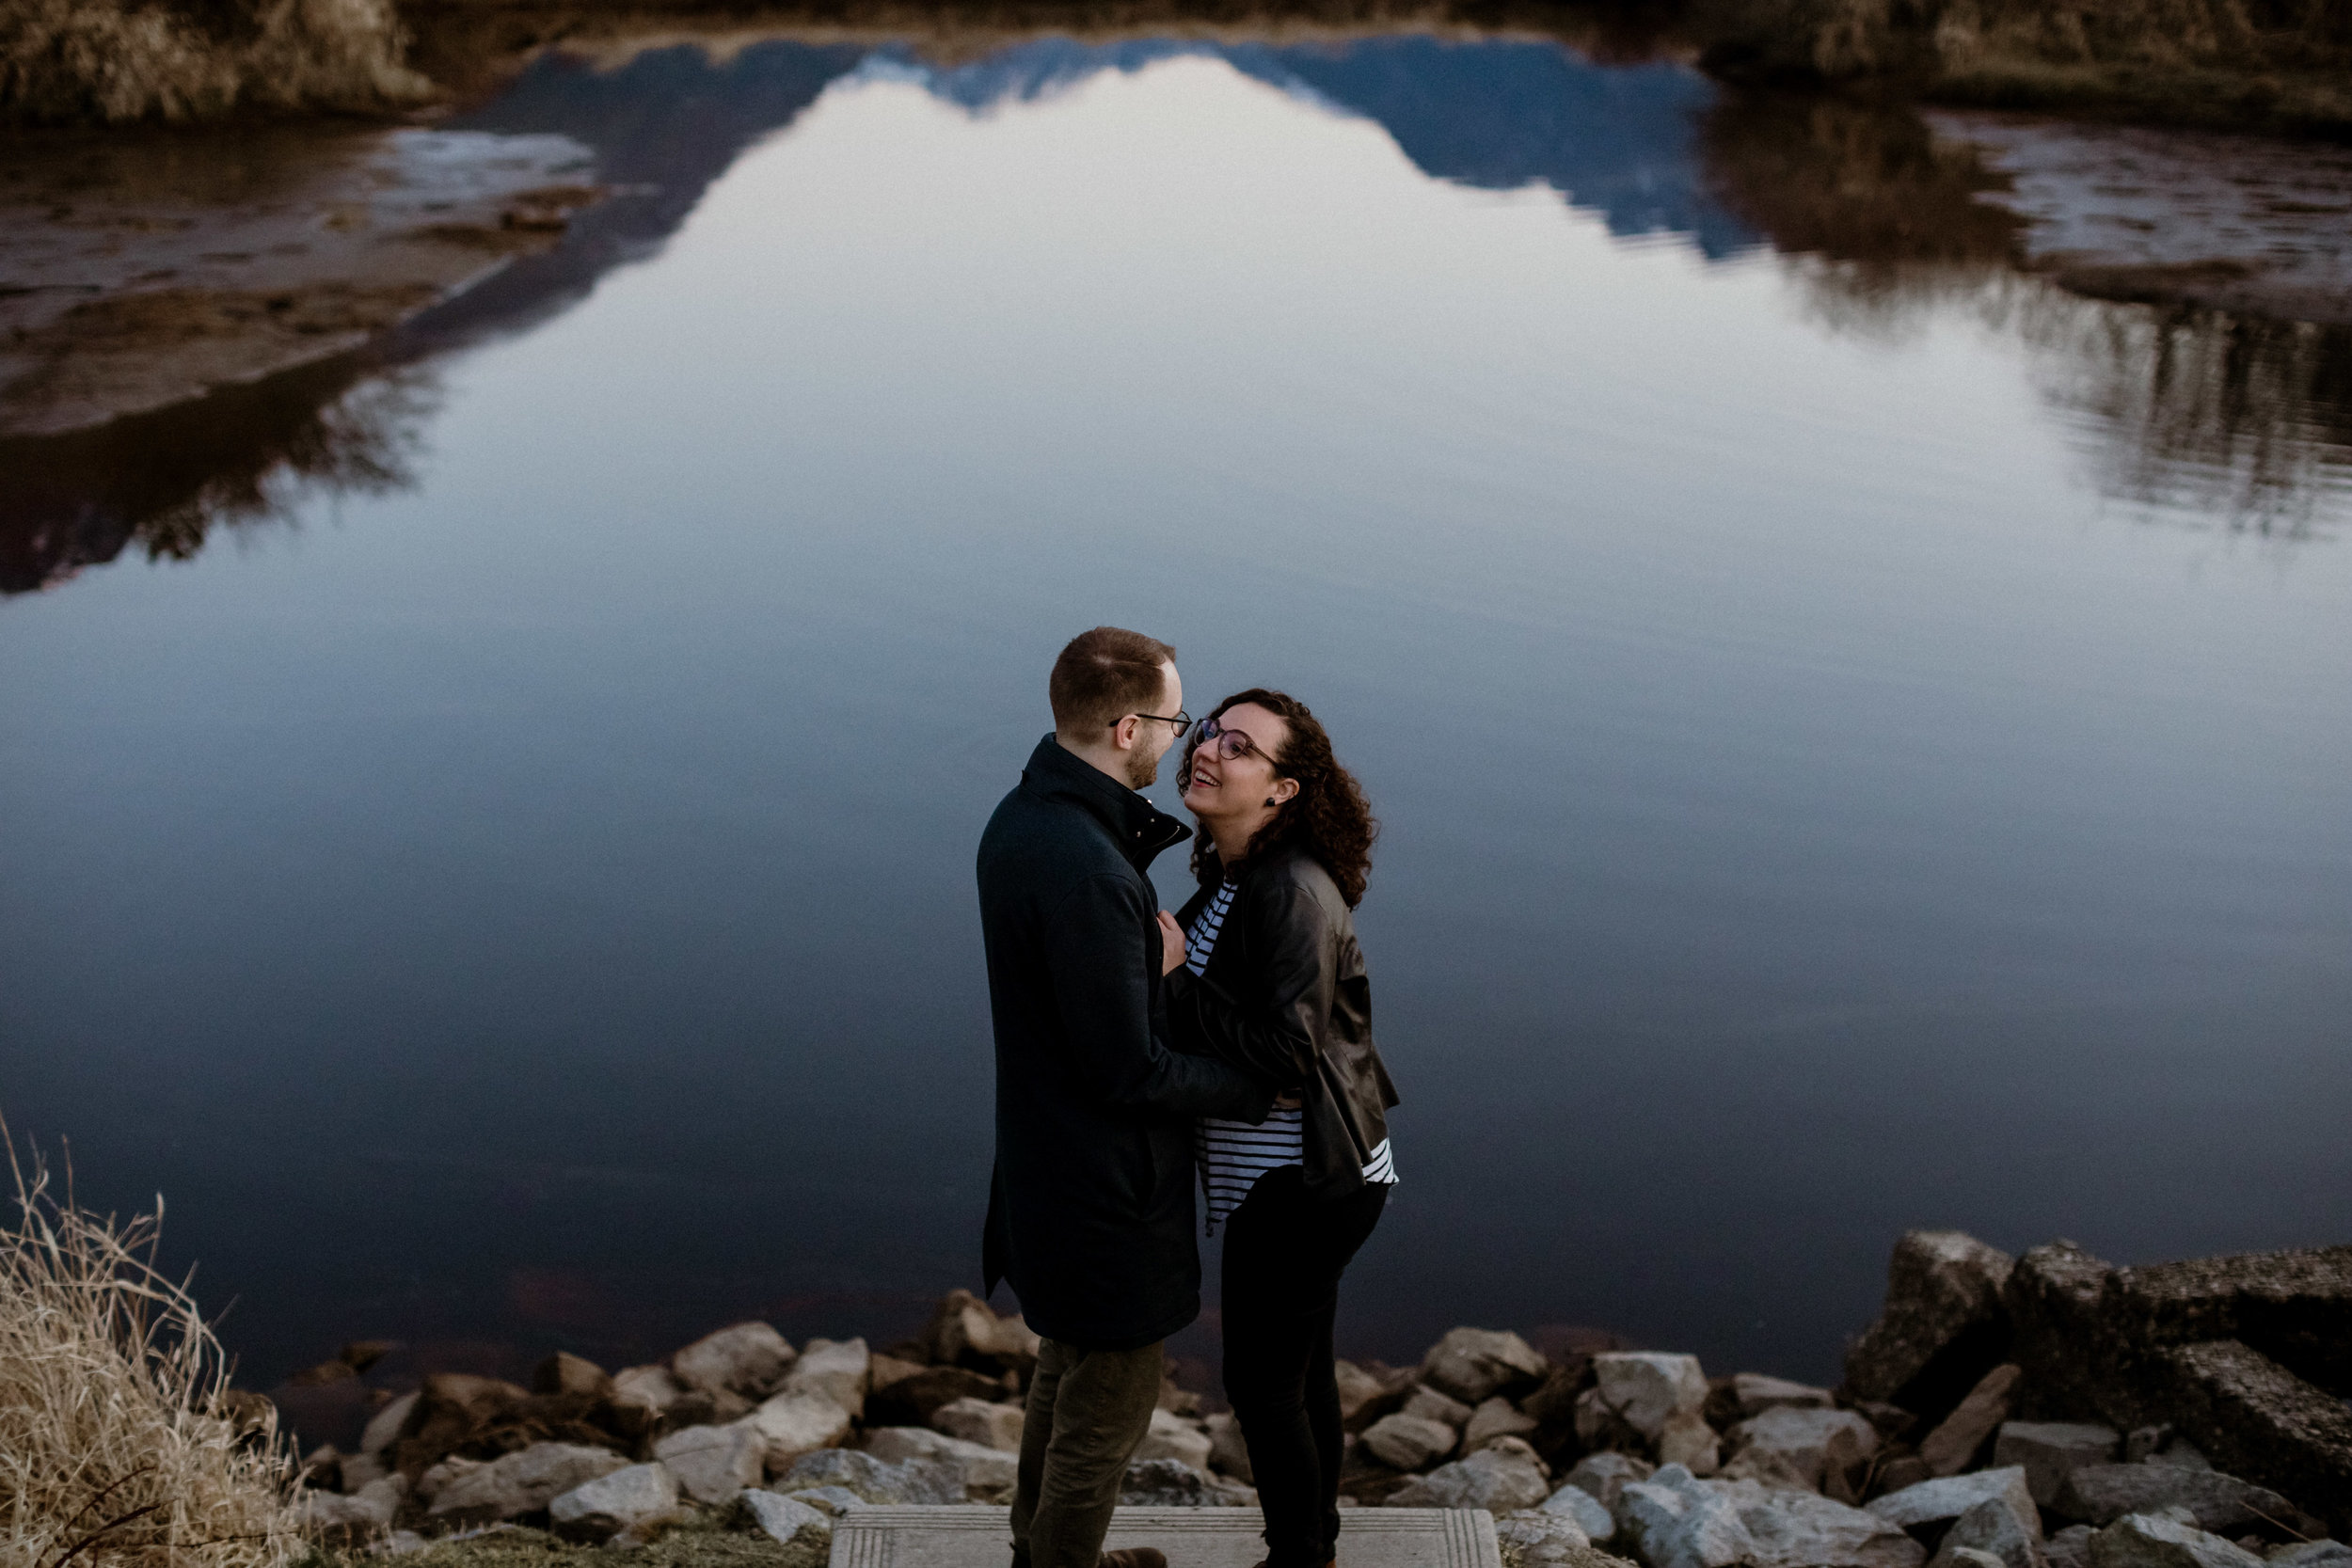 An intimate and romantic sunrise engagement photo of a couple at Pitt Lake in Vancouver.